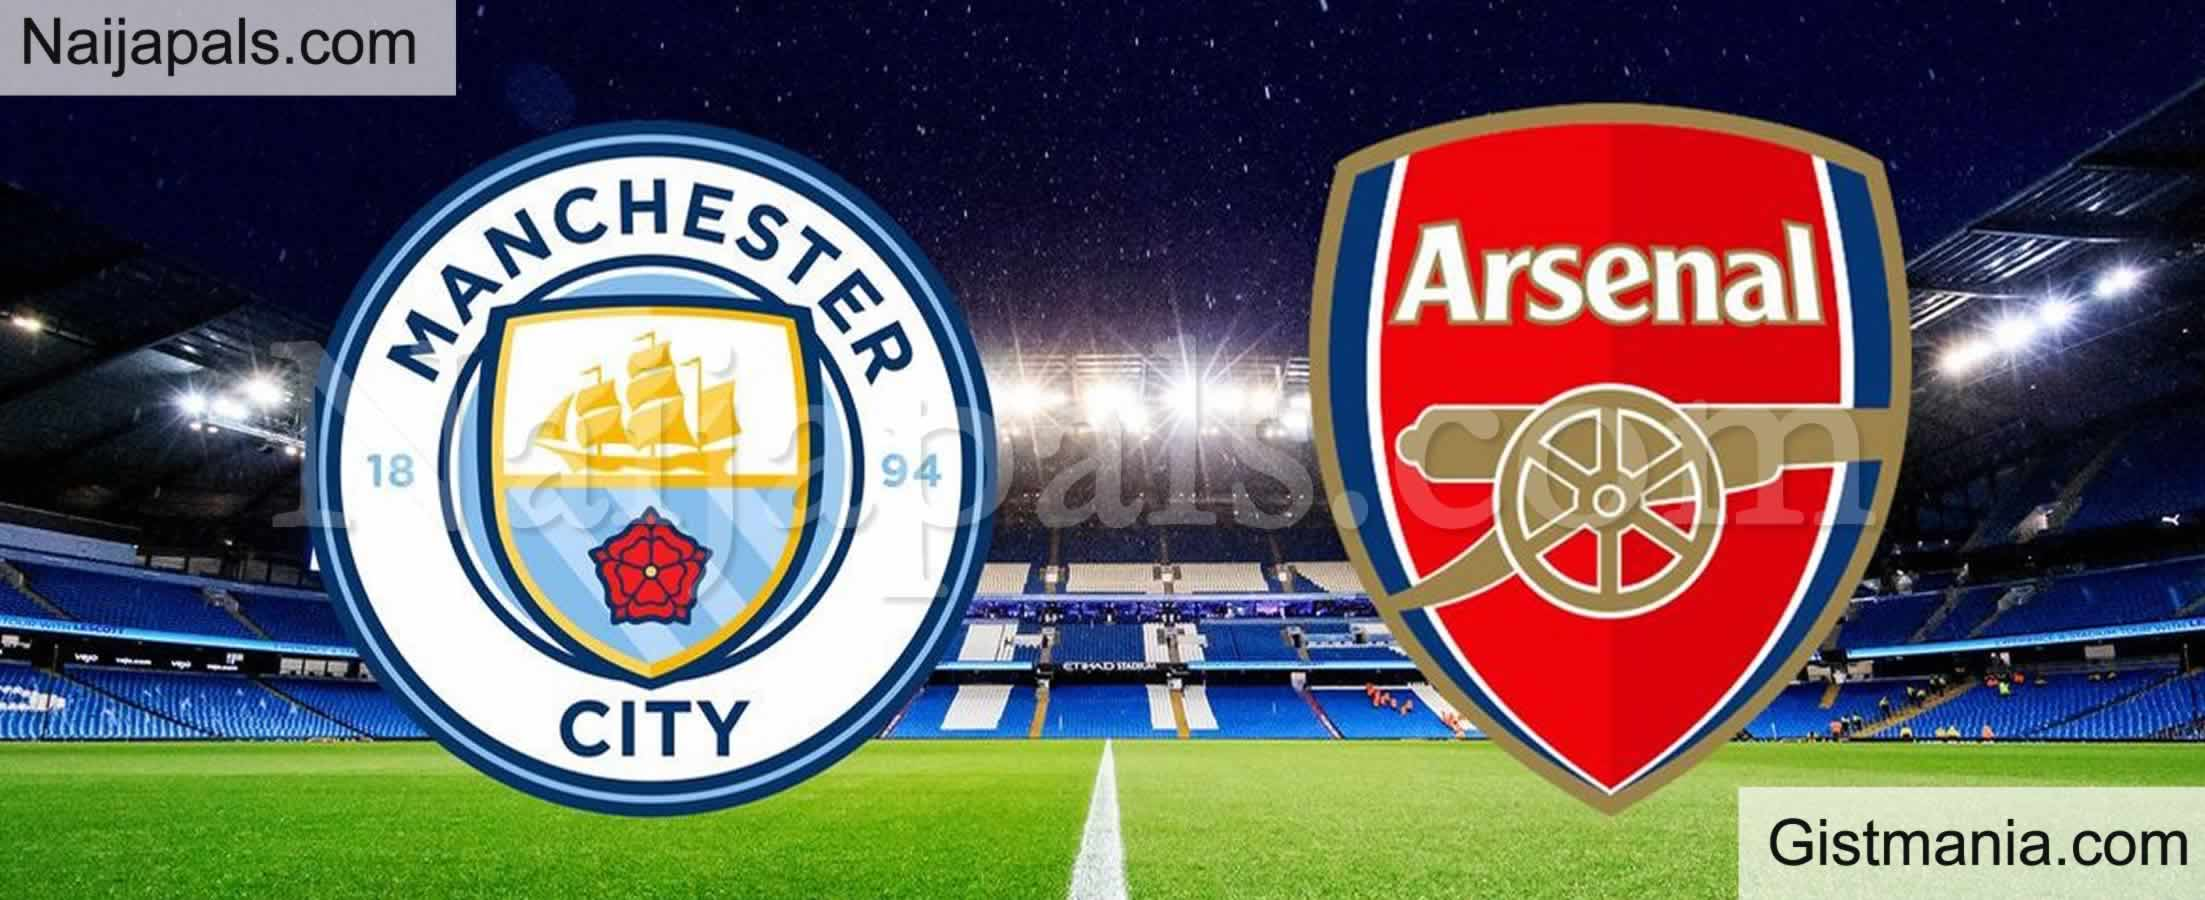 <img alt='.' class='lazyload' data-src='https://img.gistmania.com/emot/soccer.gif' /> <b>Manchester United v Arsenal : English Premier League Match, Team News, Goal Scorers and Stats</b>